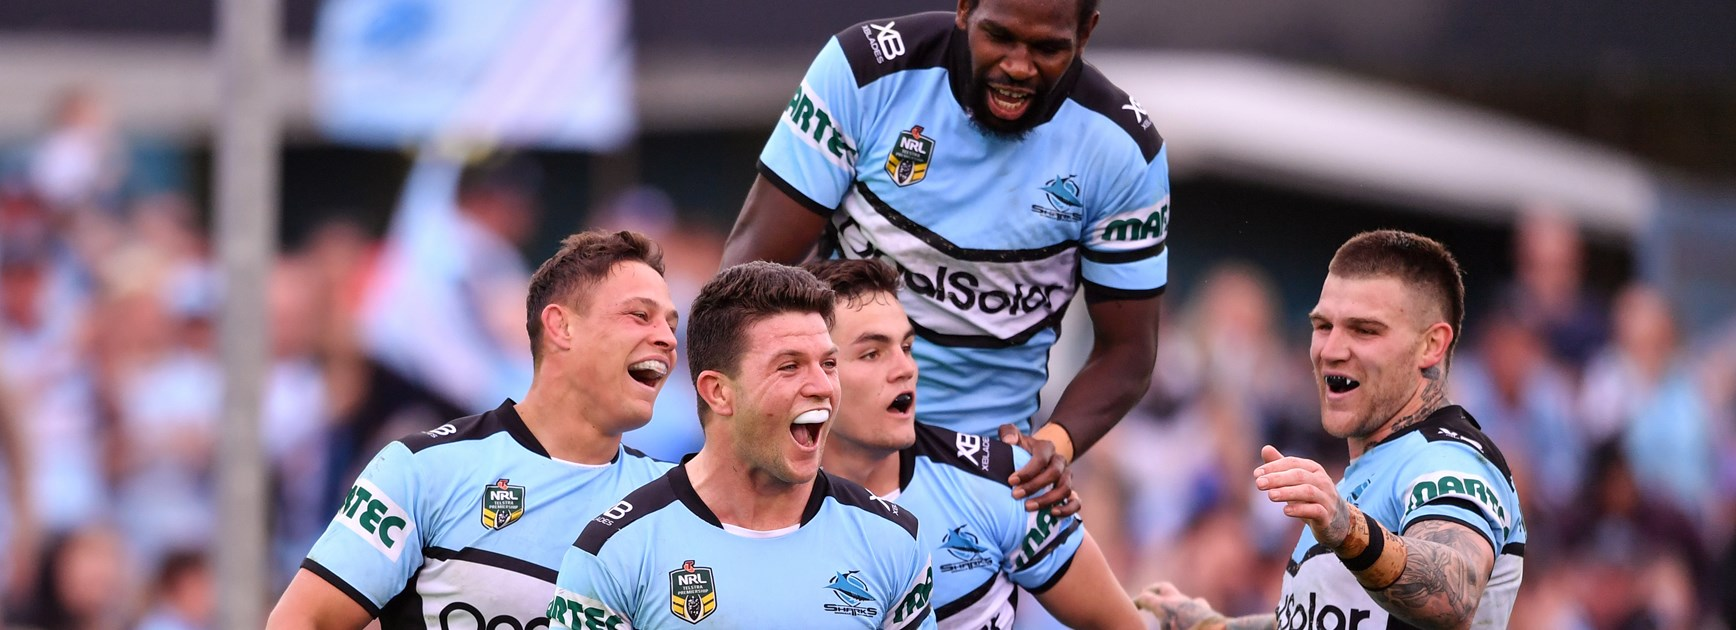 Sharks: 2018 season by the numbers